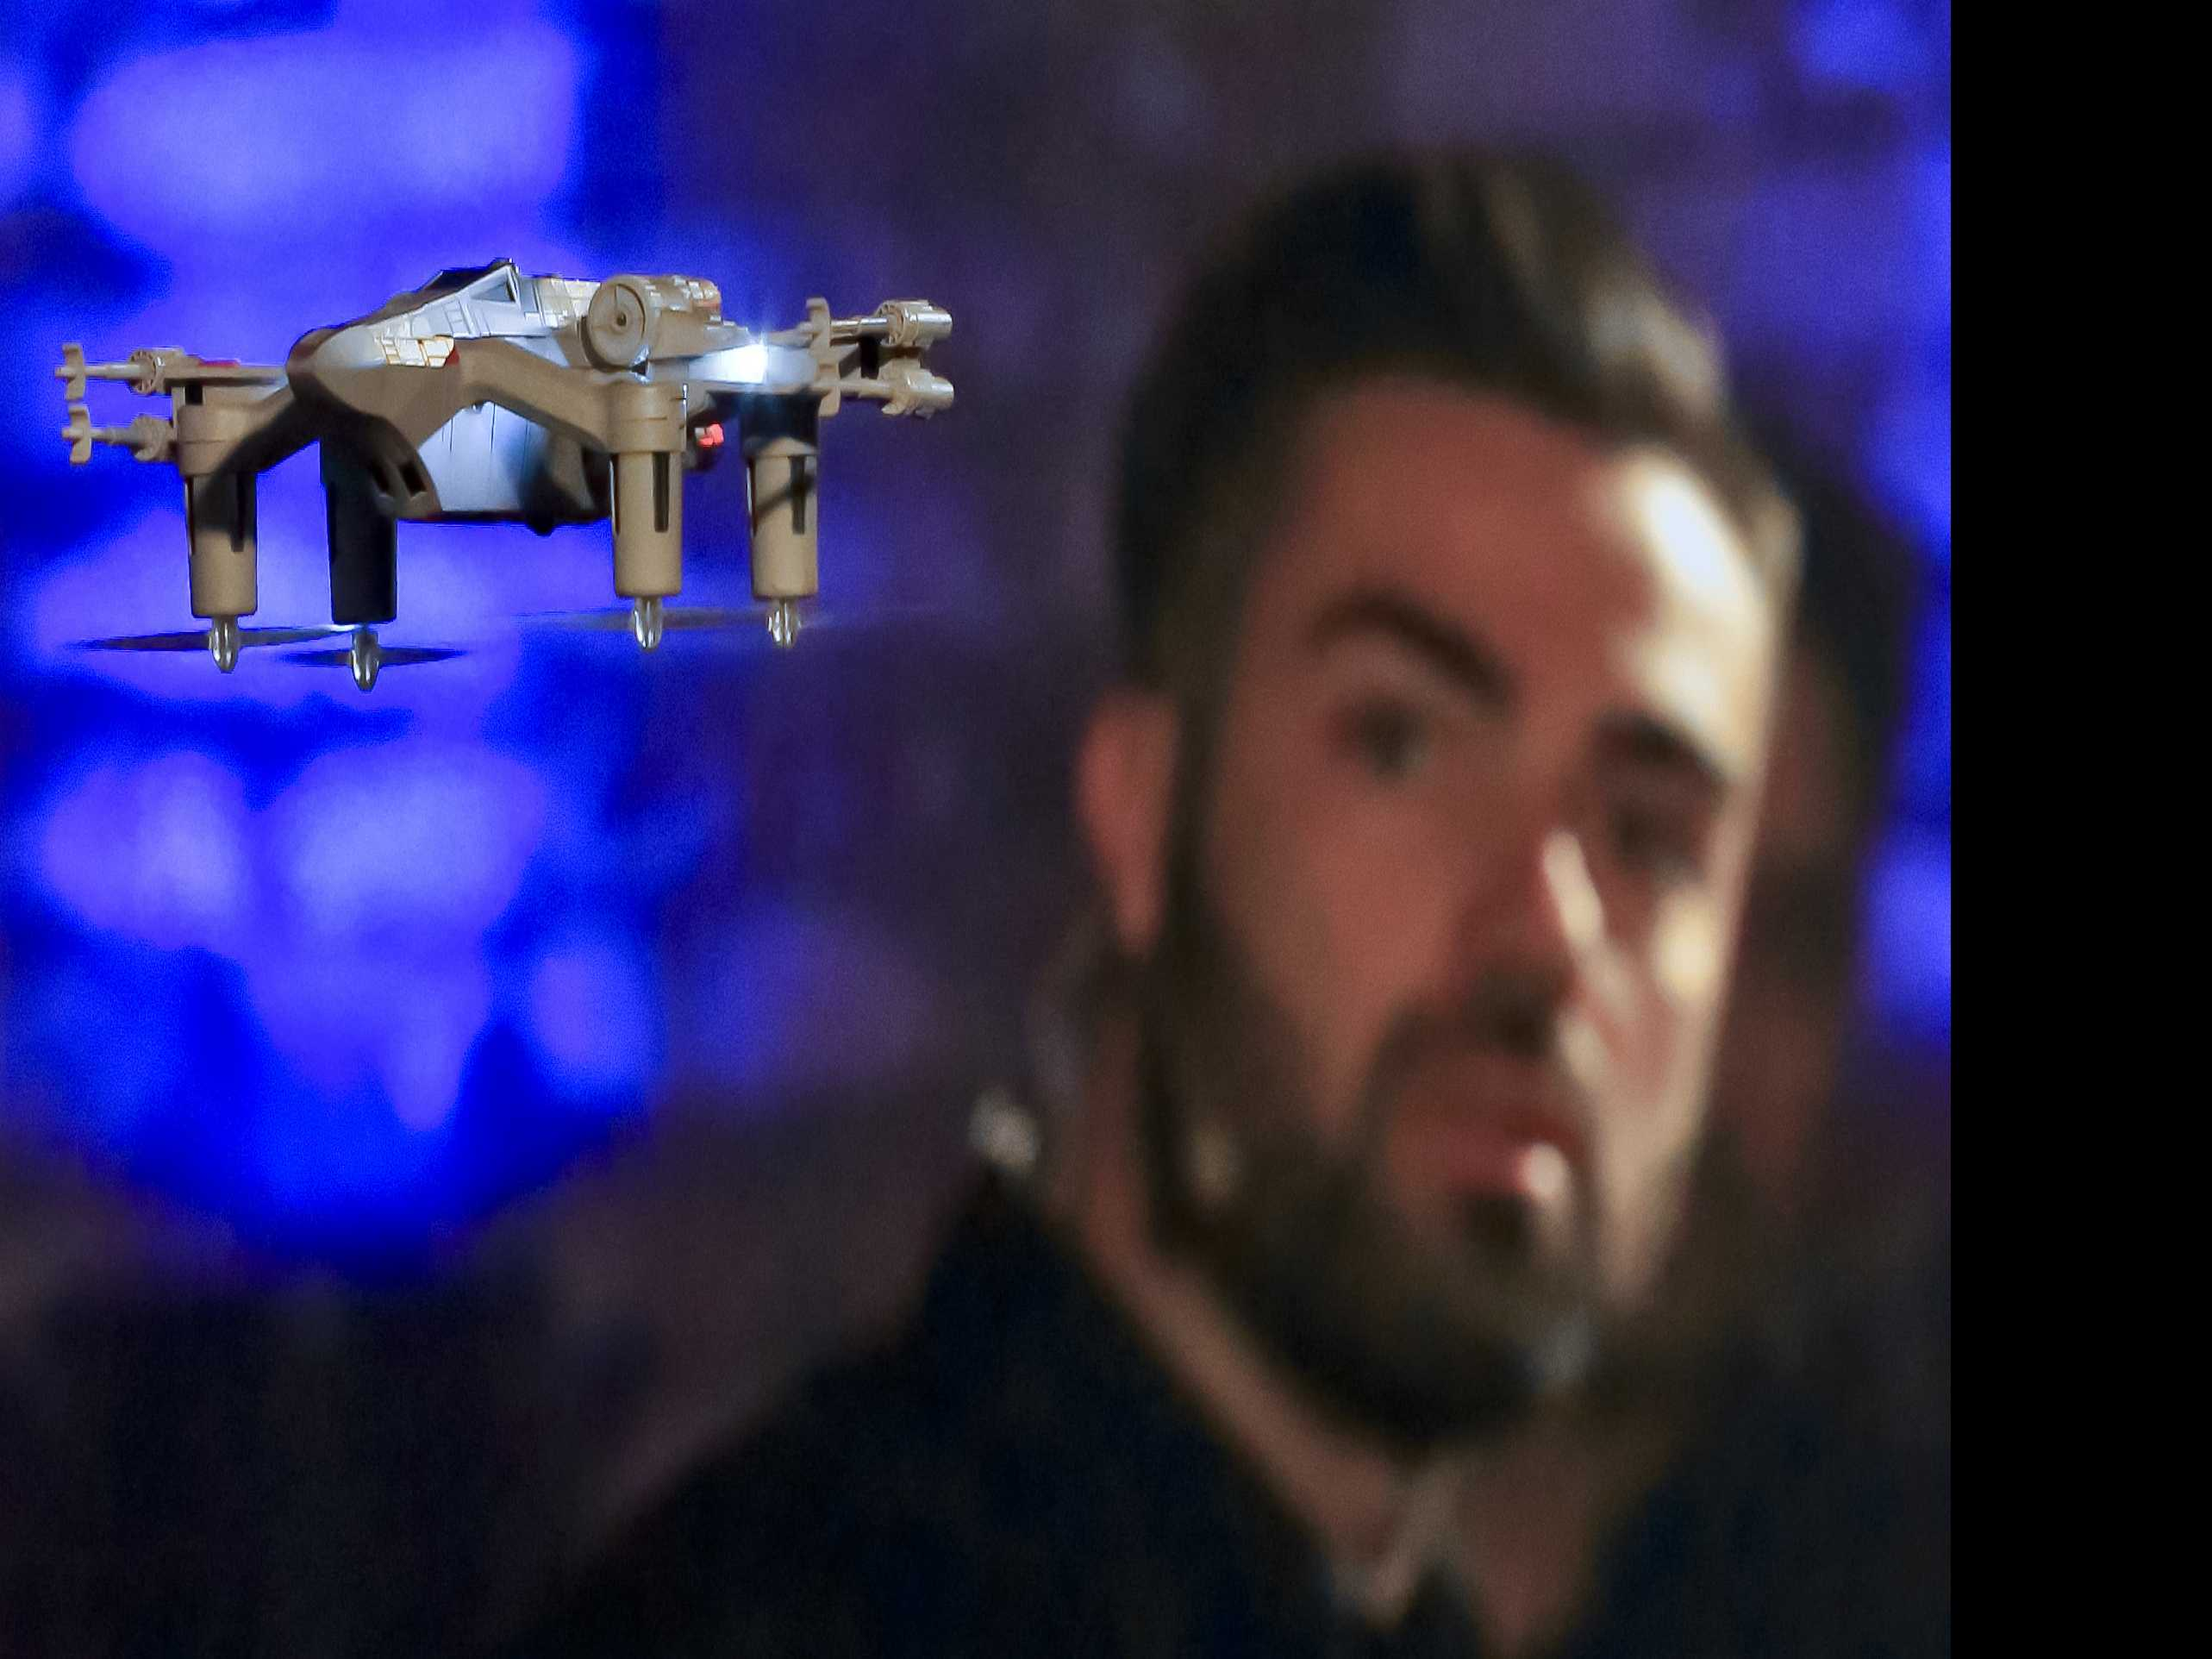 Not Droids: 'Star Wars' Fighting Drones Hitting the Air